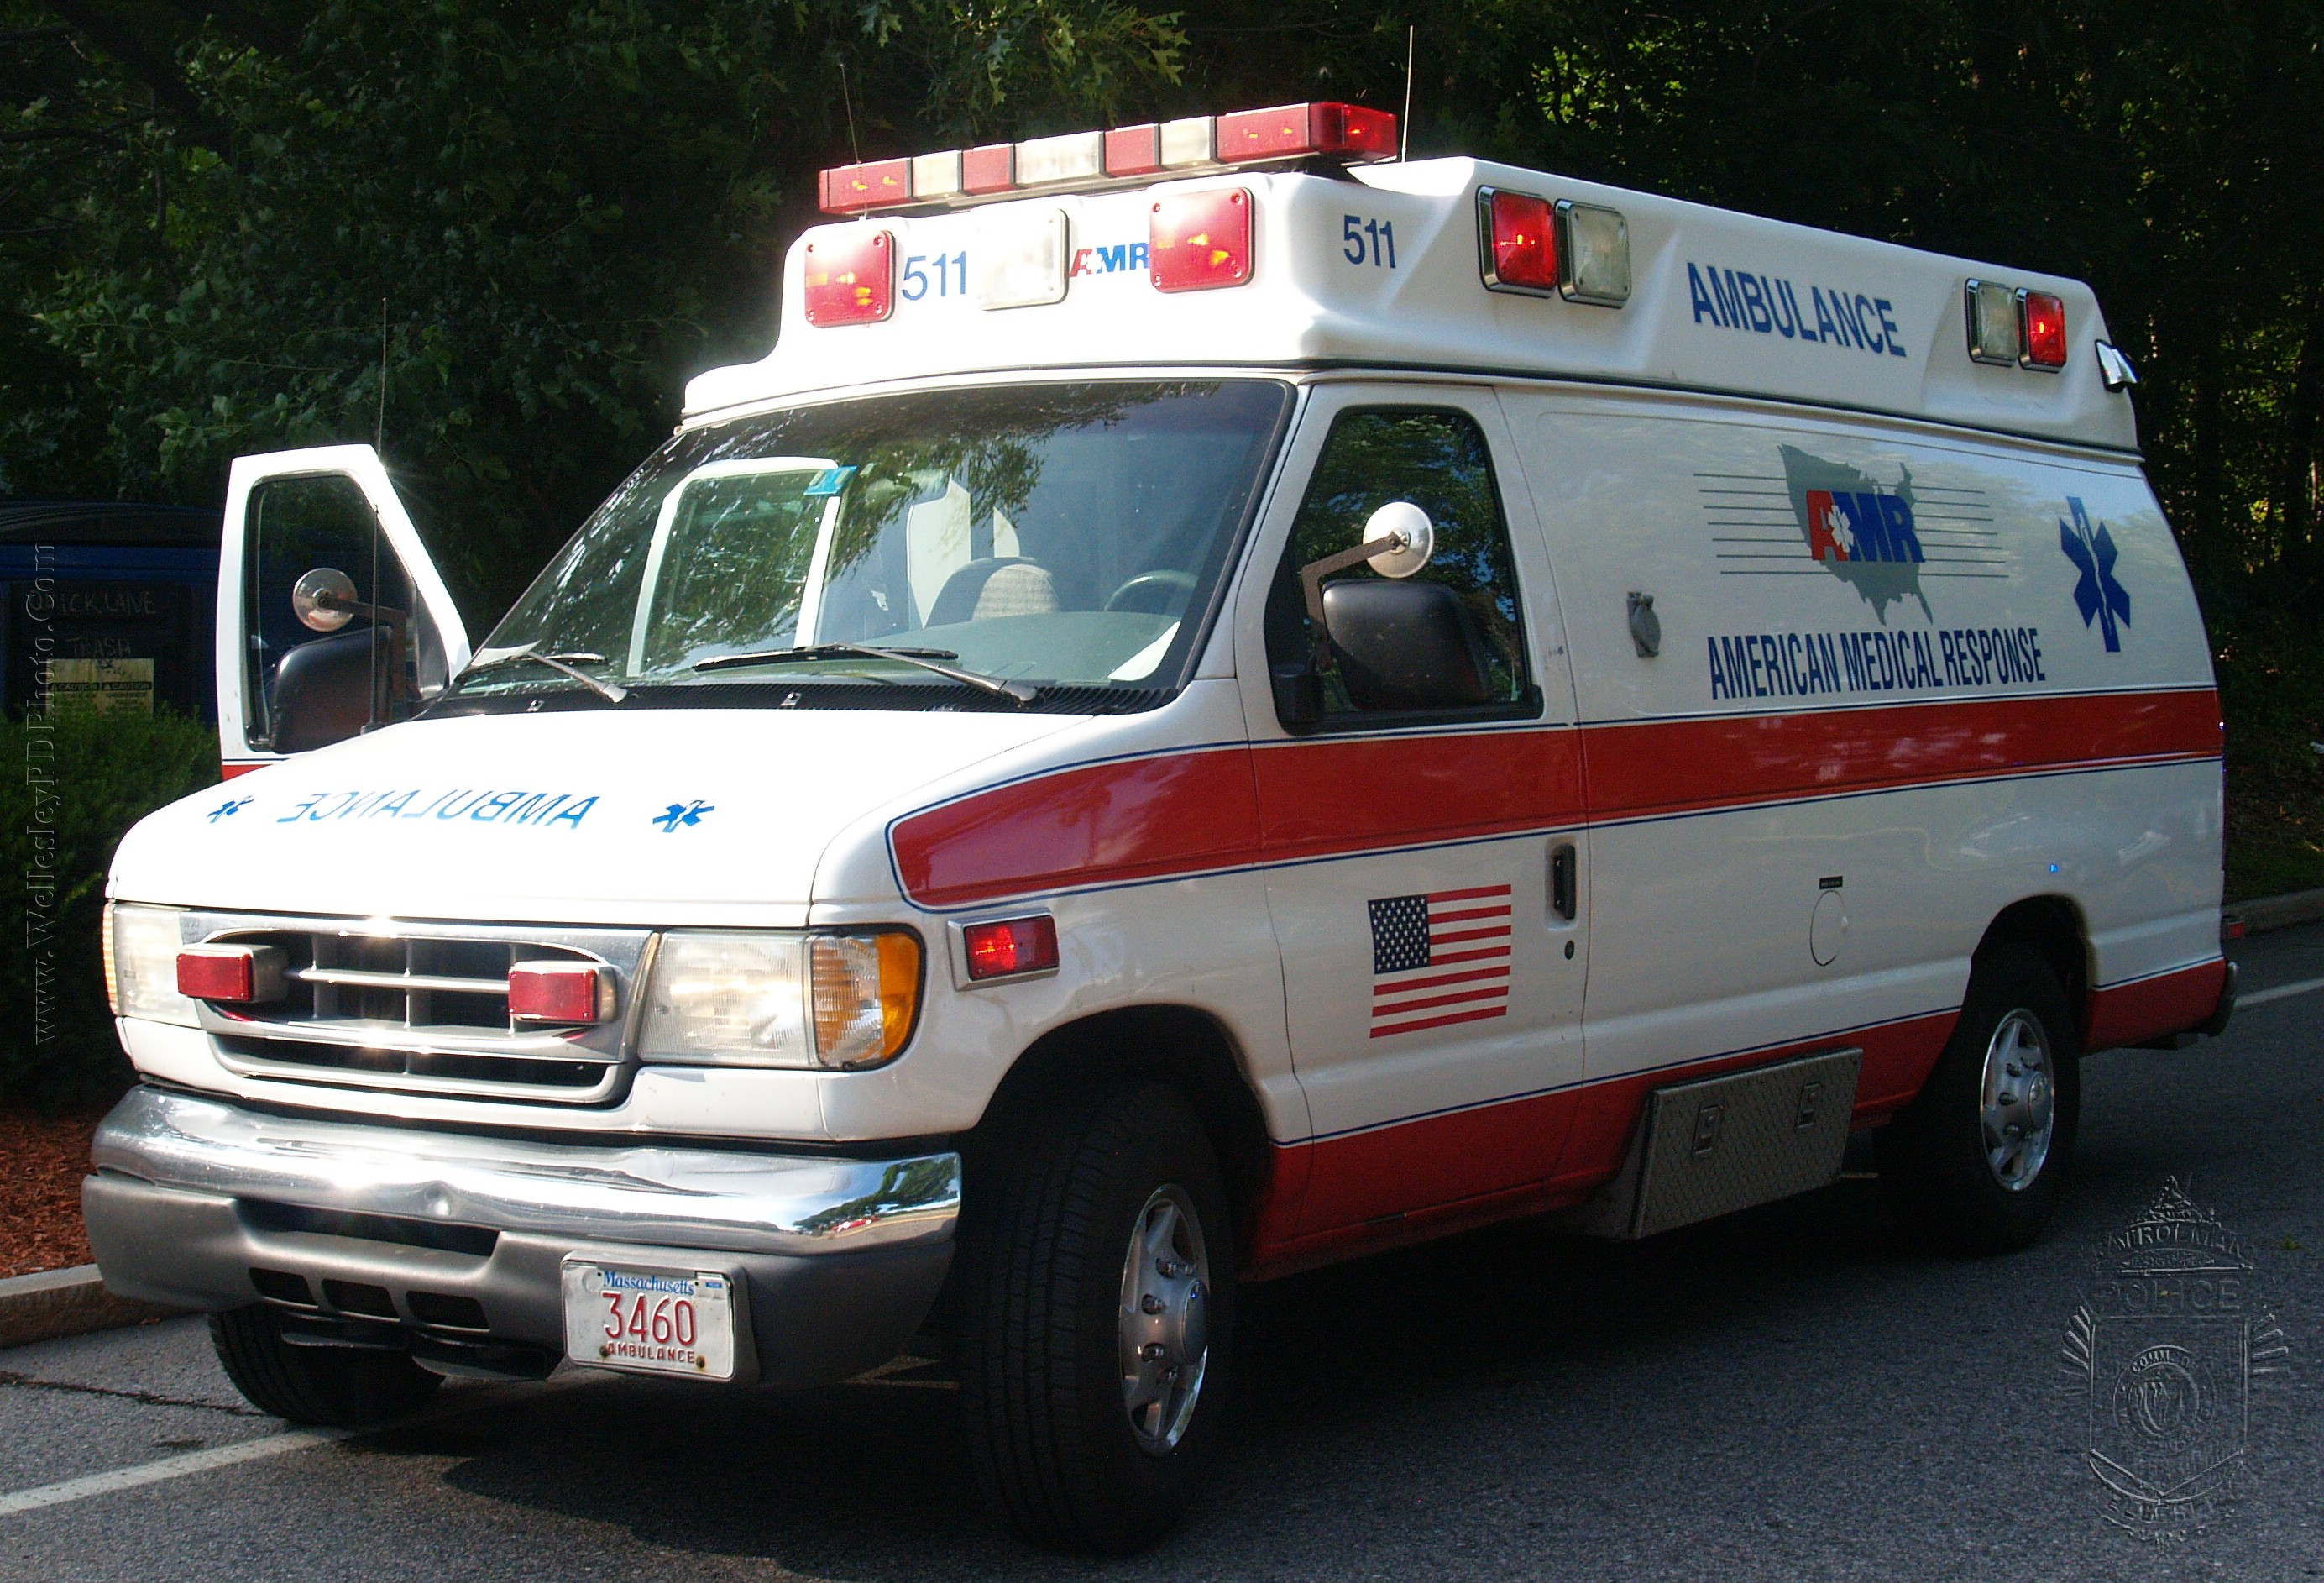 American Medical Response Ambulance